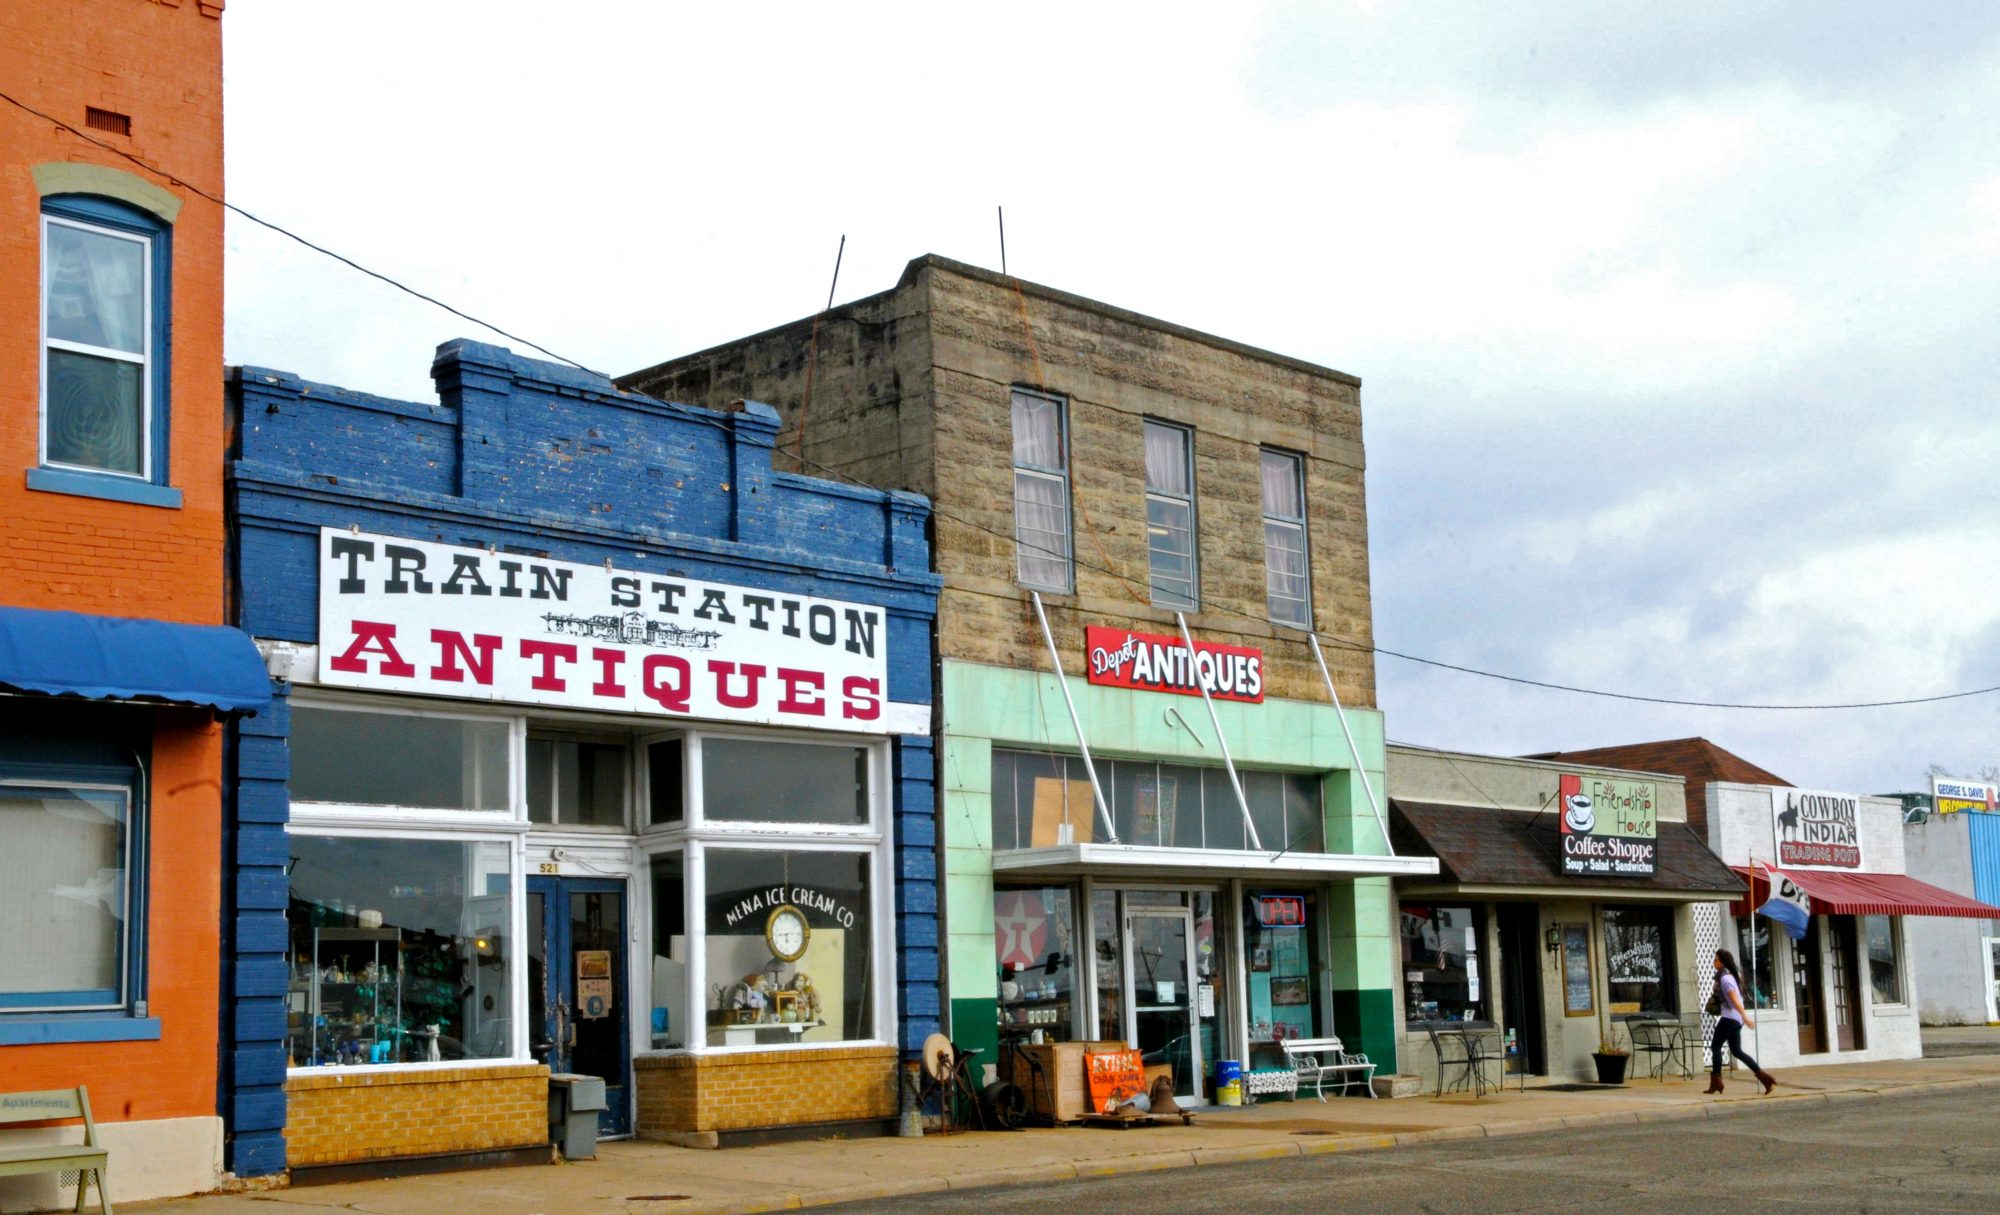 Antique Lovers Must Visit the Tiny Arkansas Town of Mena